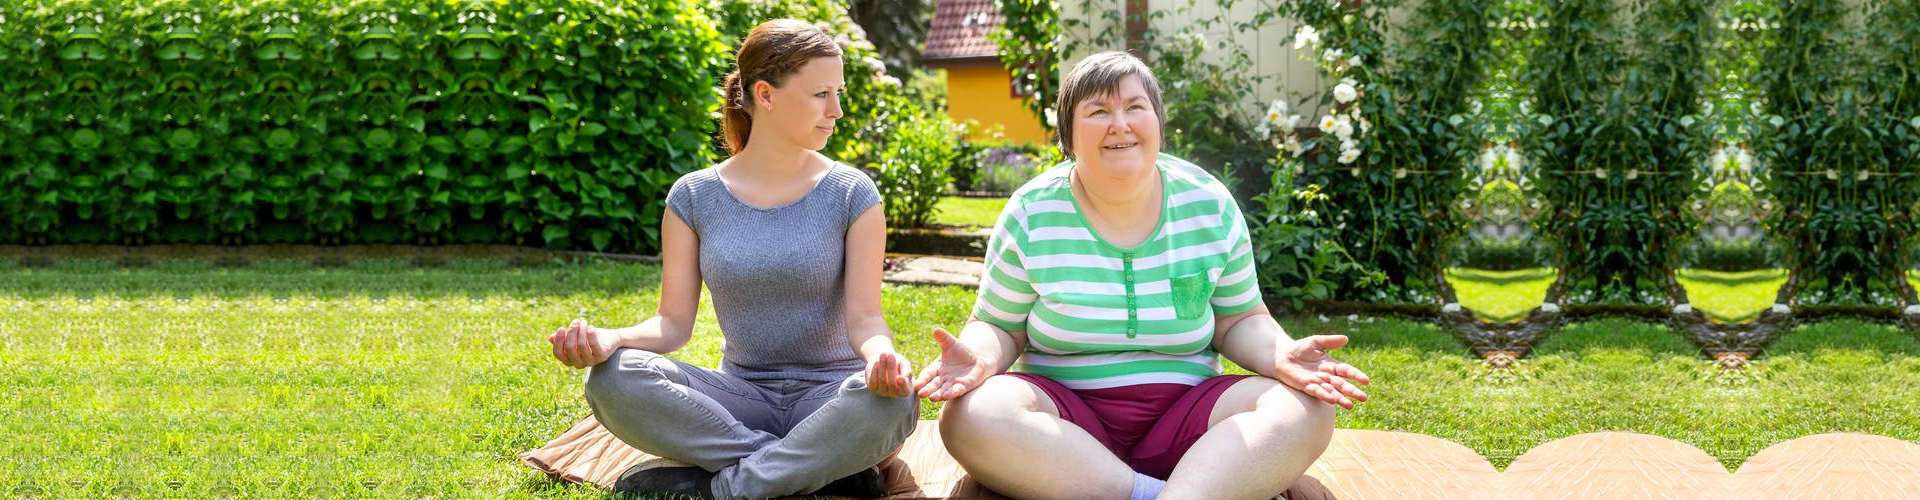 two women doing some yoga or relaxation exercises